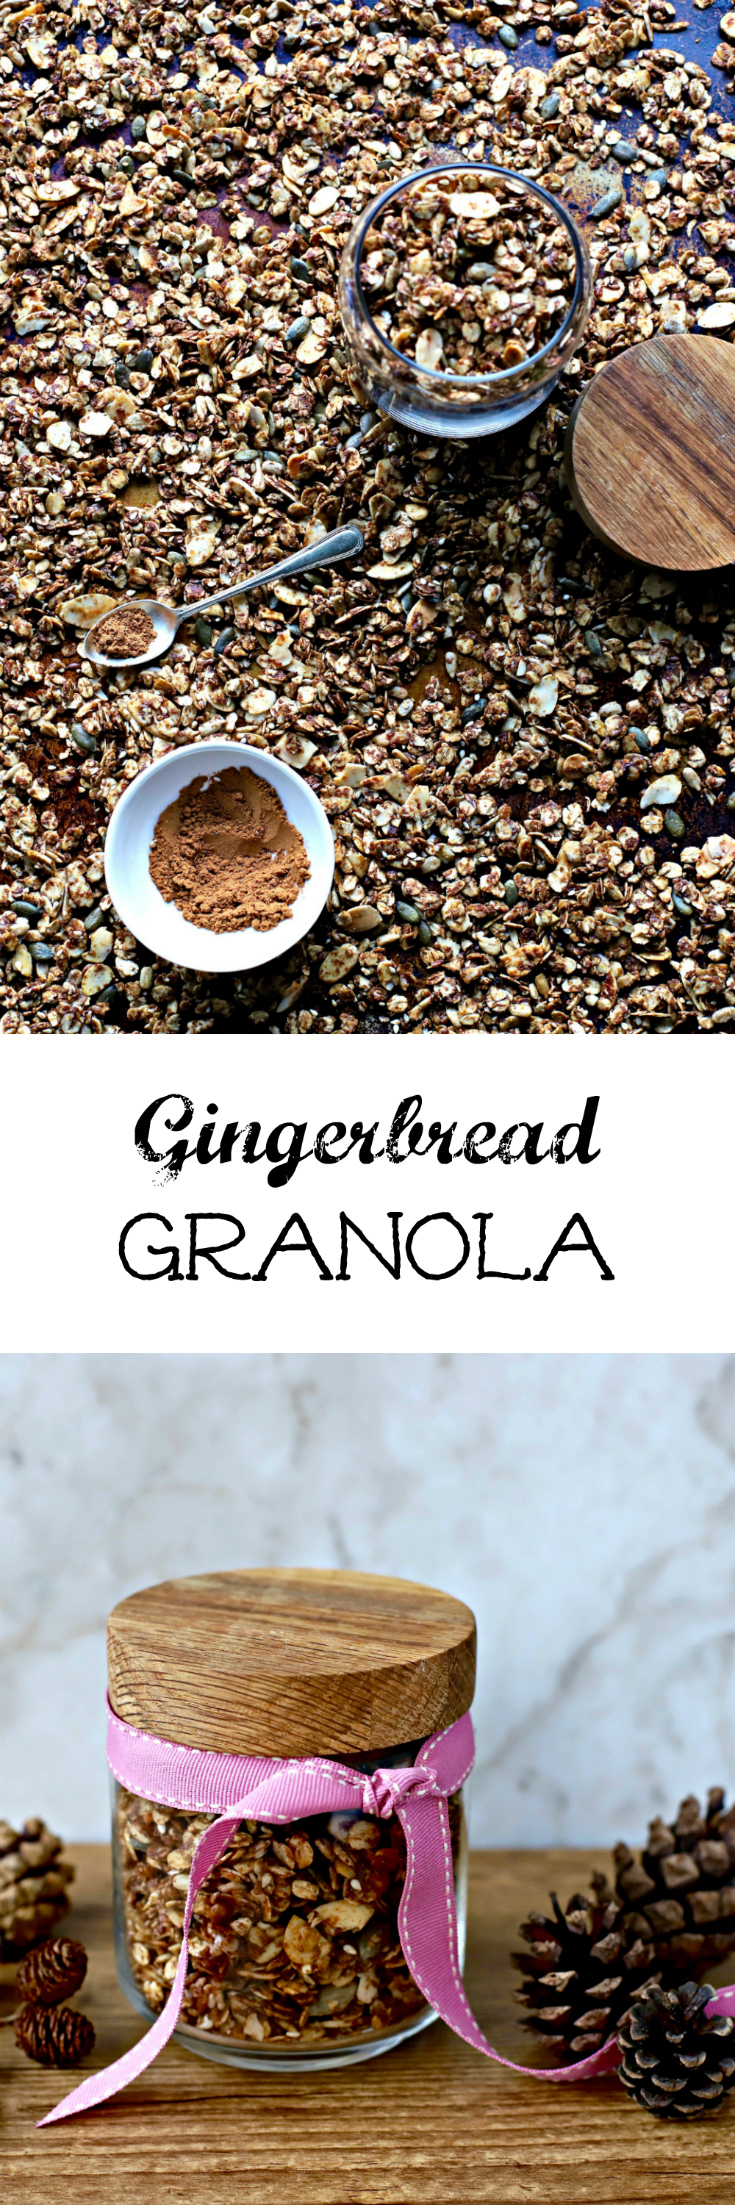 Gingerbread Granola brings Christmas vibes to your breakfast table at any time of the year. Subtly sweet, slow-baked and delectably crunchy, make it even more irresistible by adding dried cranberries and little nuggets of dark chocolate after cooling. A great last-minute Christmas gift, too. kelliesfoodtoglow.com